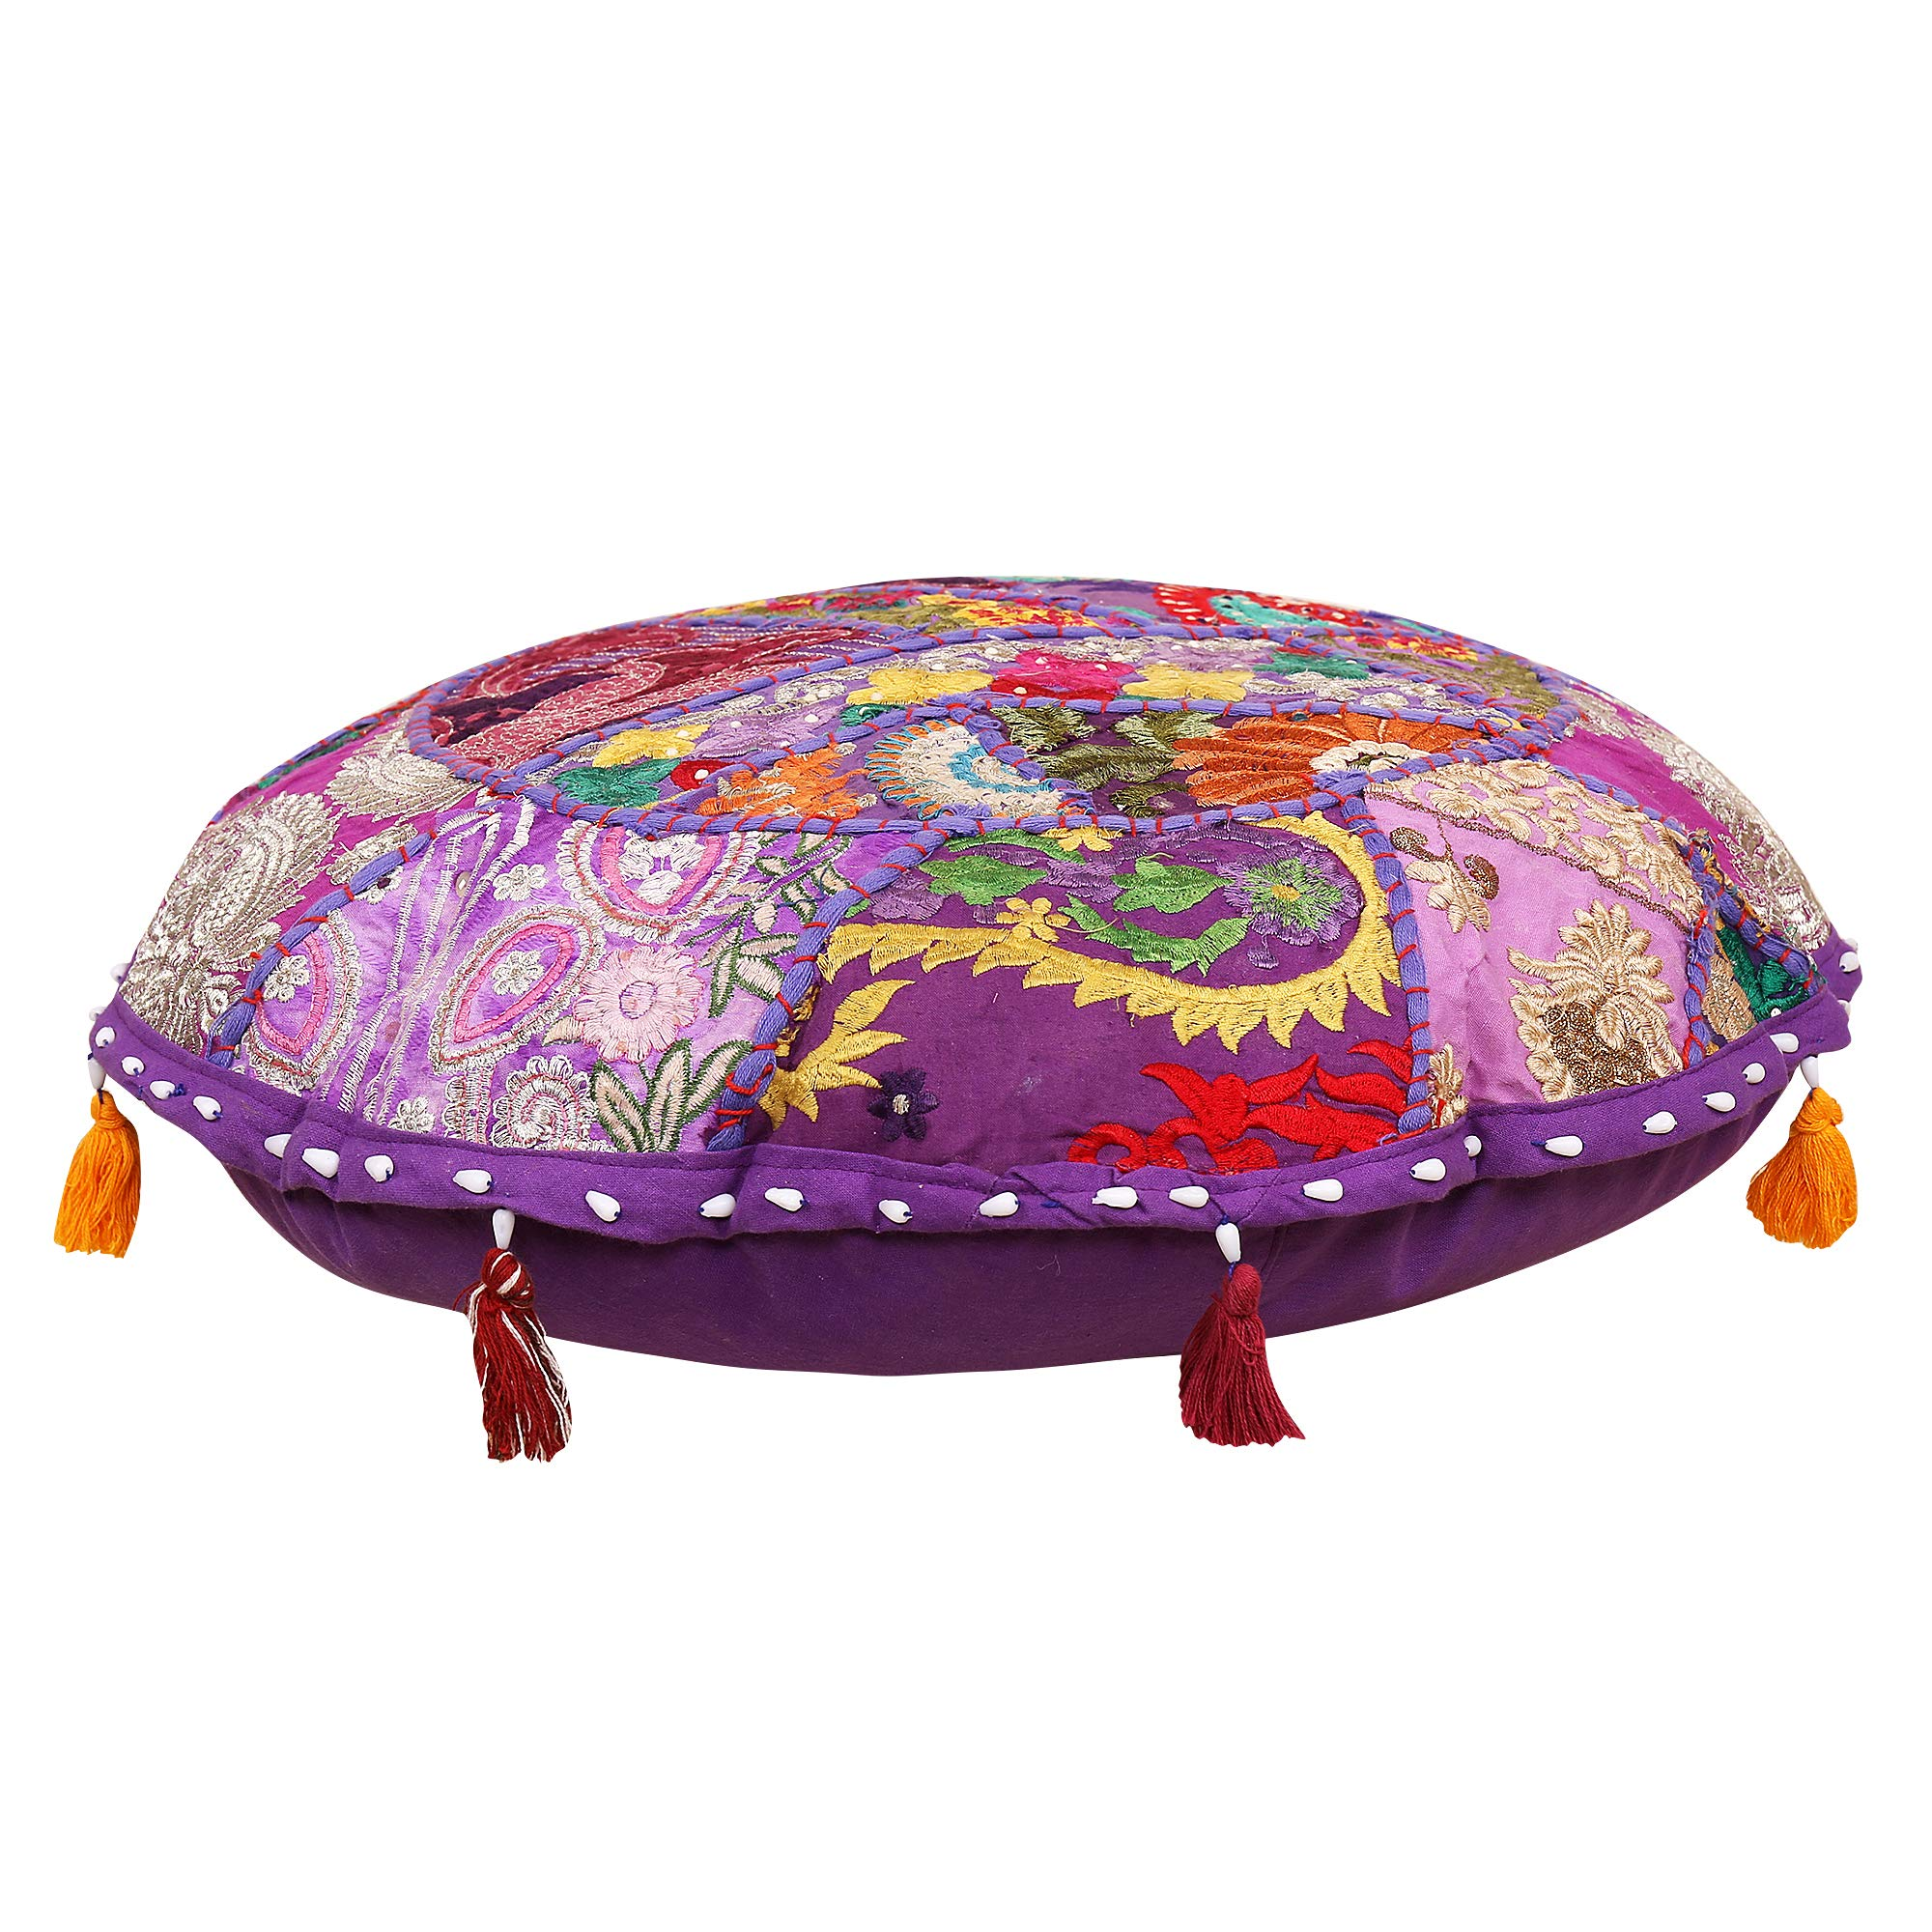 Round Cotton Floor Cushion Cover Vintage Embroidered Patchwork 32'' Tuffet Indian Floor Pillow Cover,Gypsy Pouf, 32 Inch Bohemian Vintage Embroidered Pouf Ottoman Footstool Cover Indian Round Indian by Janki Creation